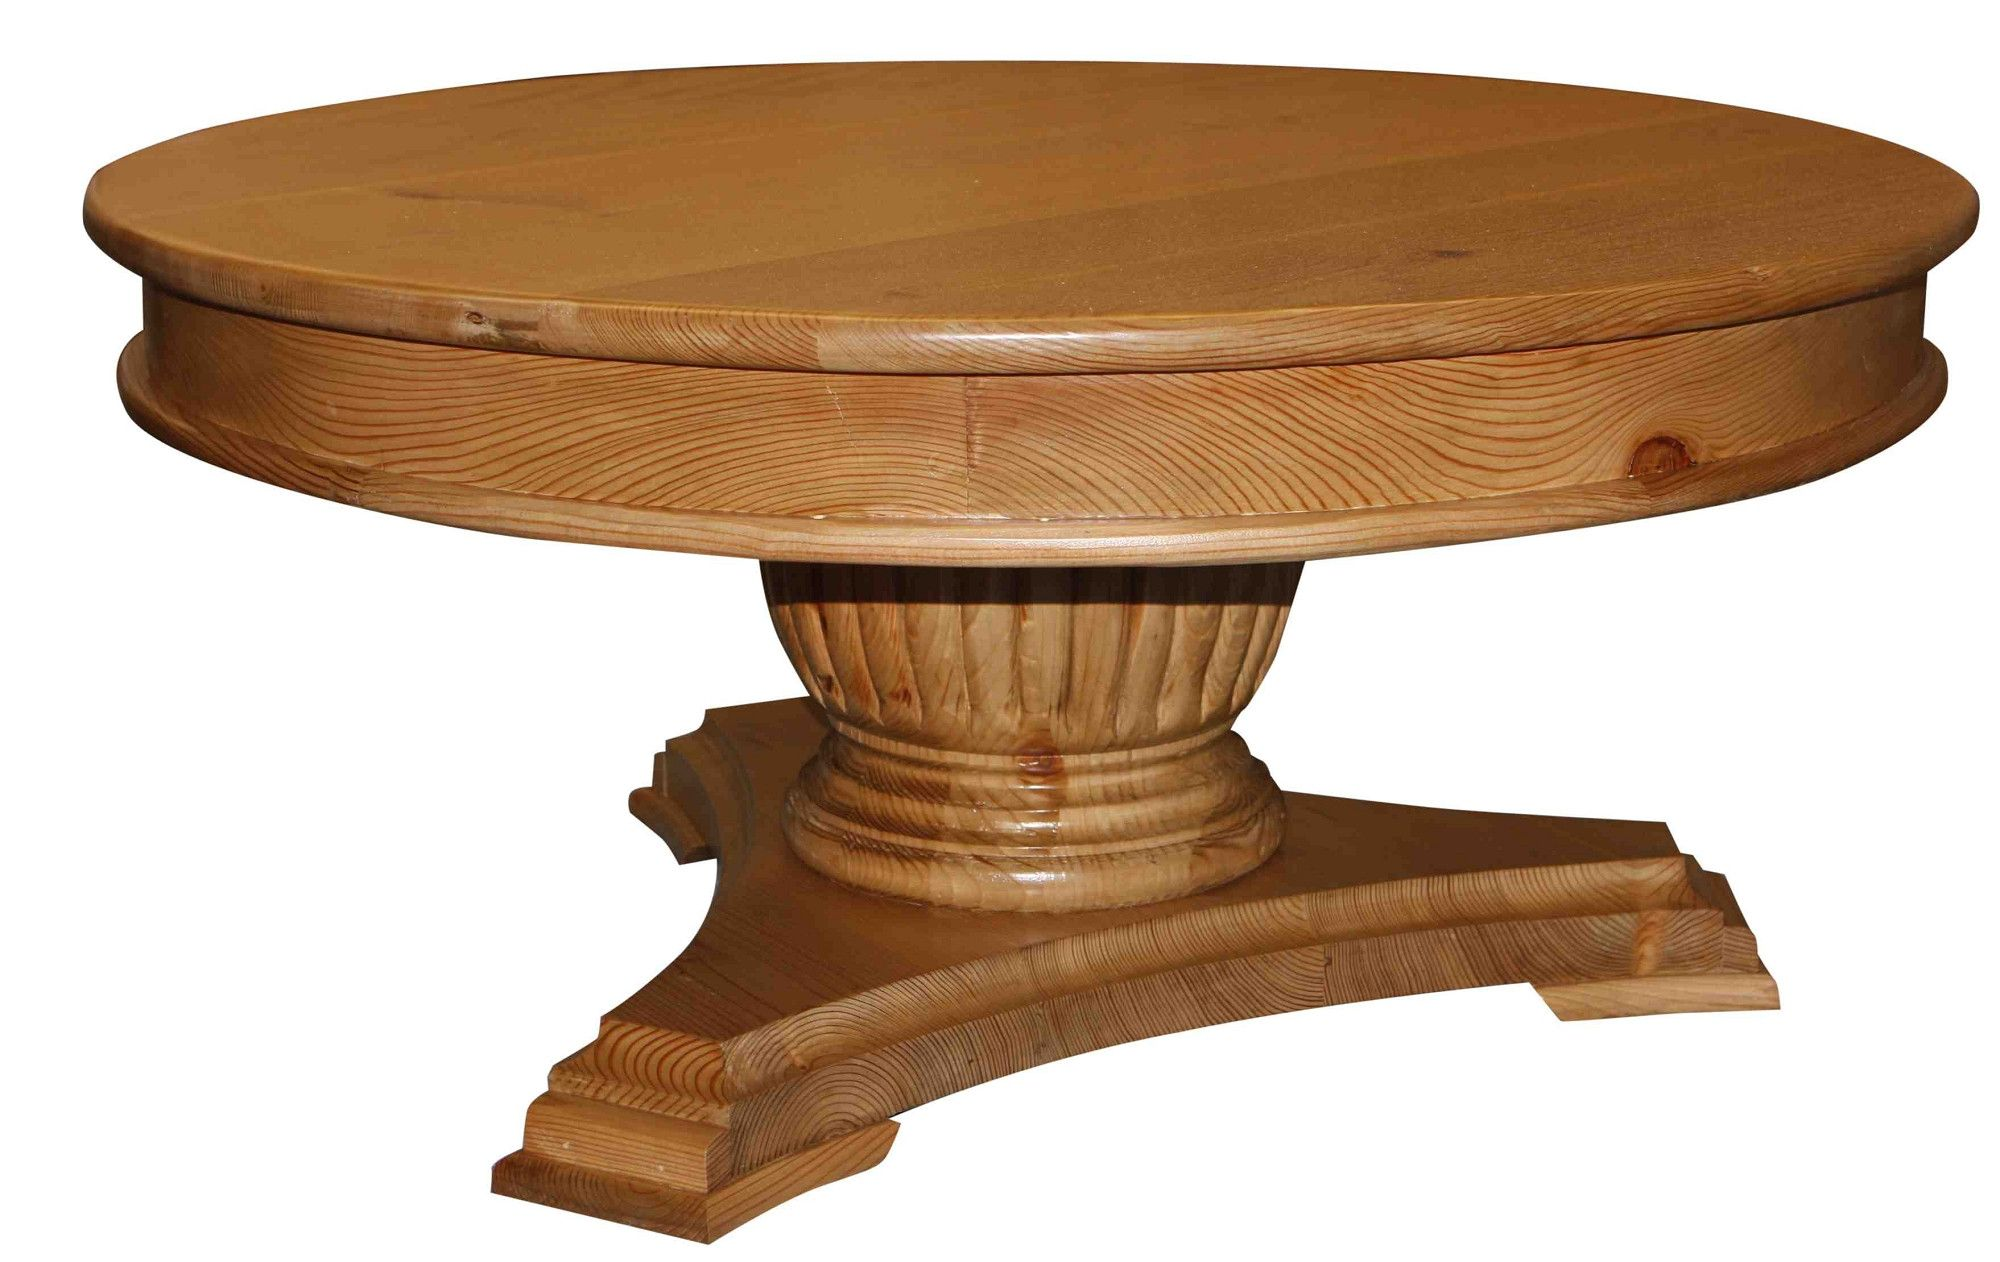 Fluted Pedestal Base Round Coffee Table Round Wood Coffee Table